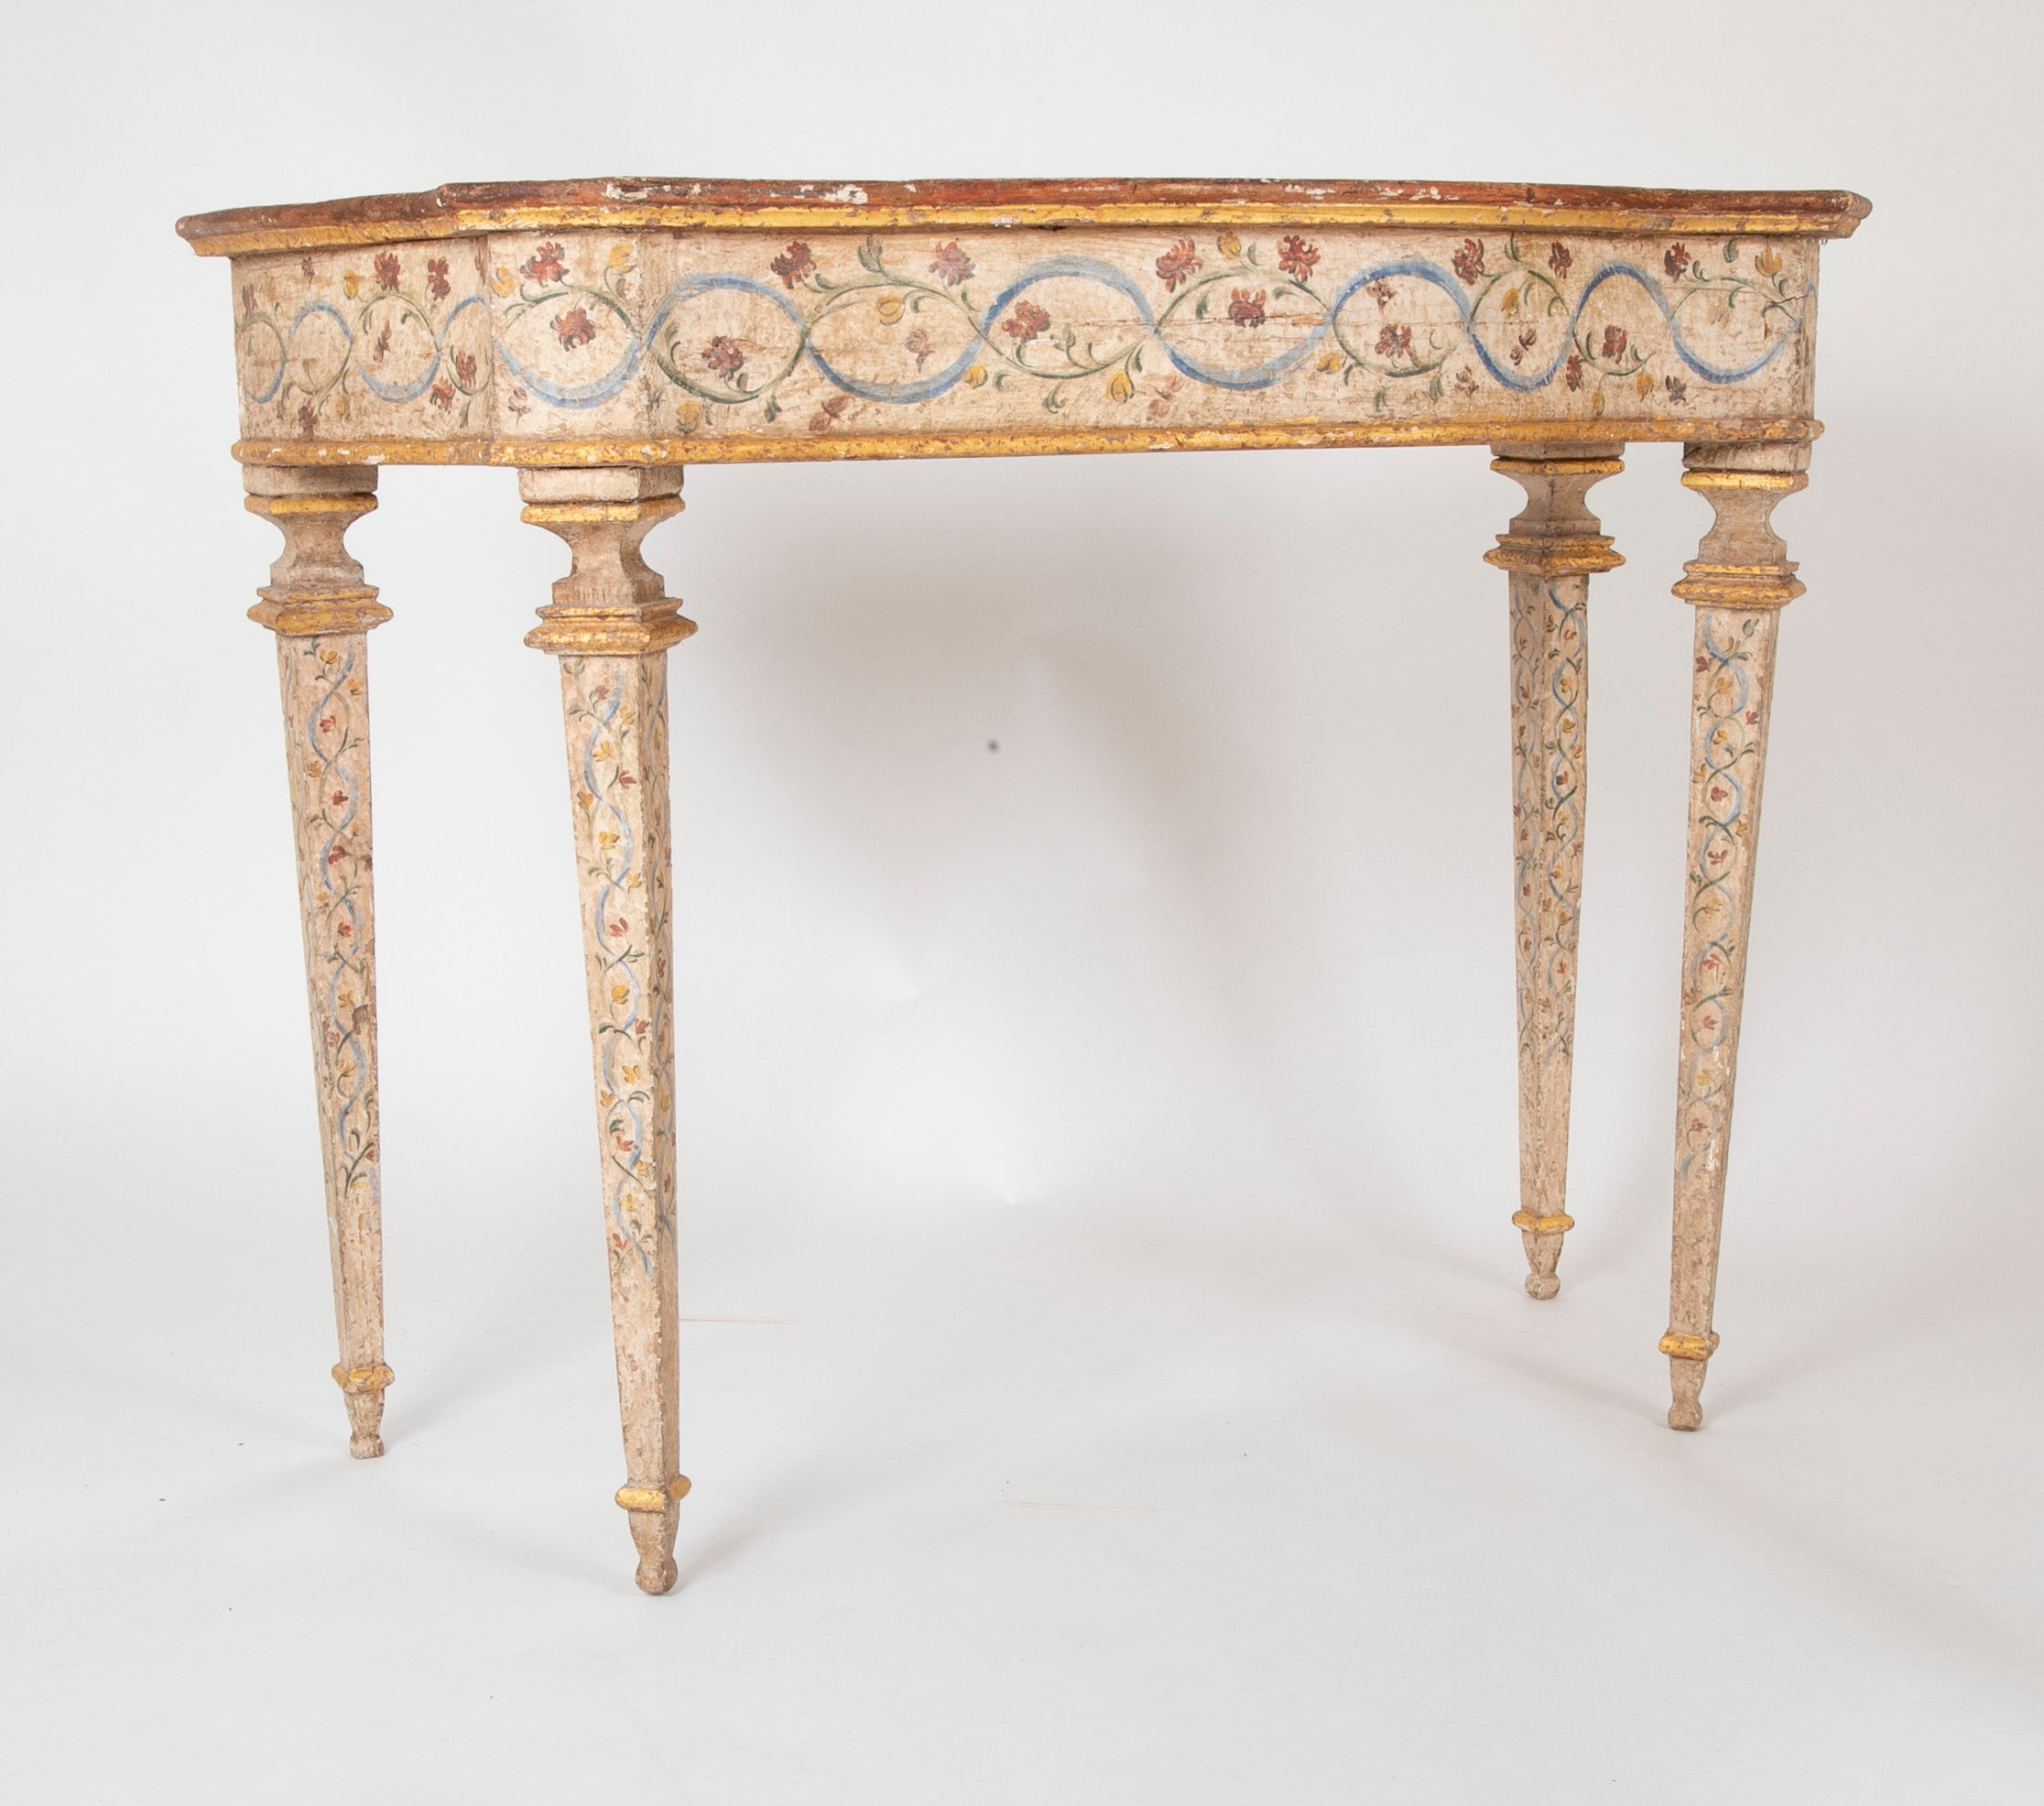 Pair of Late 18th Century Venetian Painted Consoles